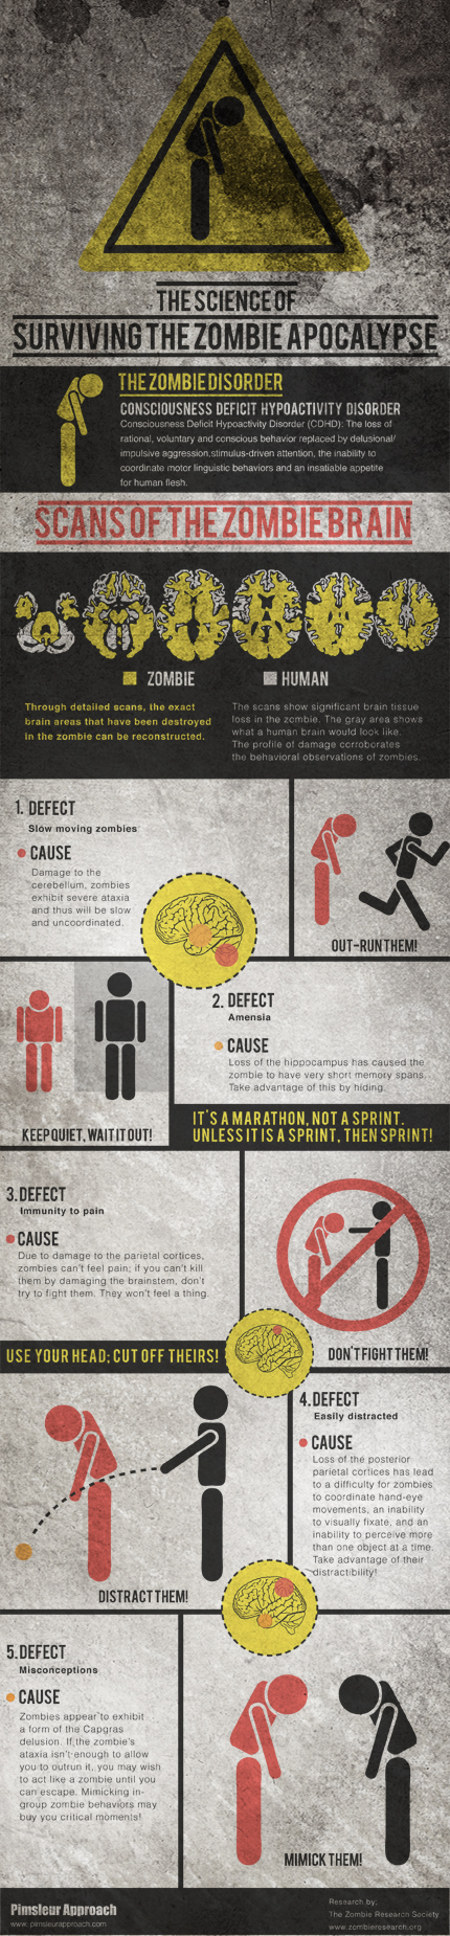 zombie brains The Science Of Surviving The Zombie Apocalypse Infographic